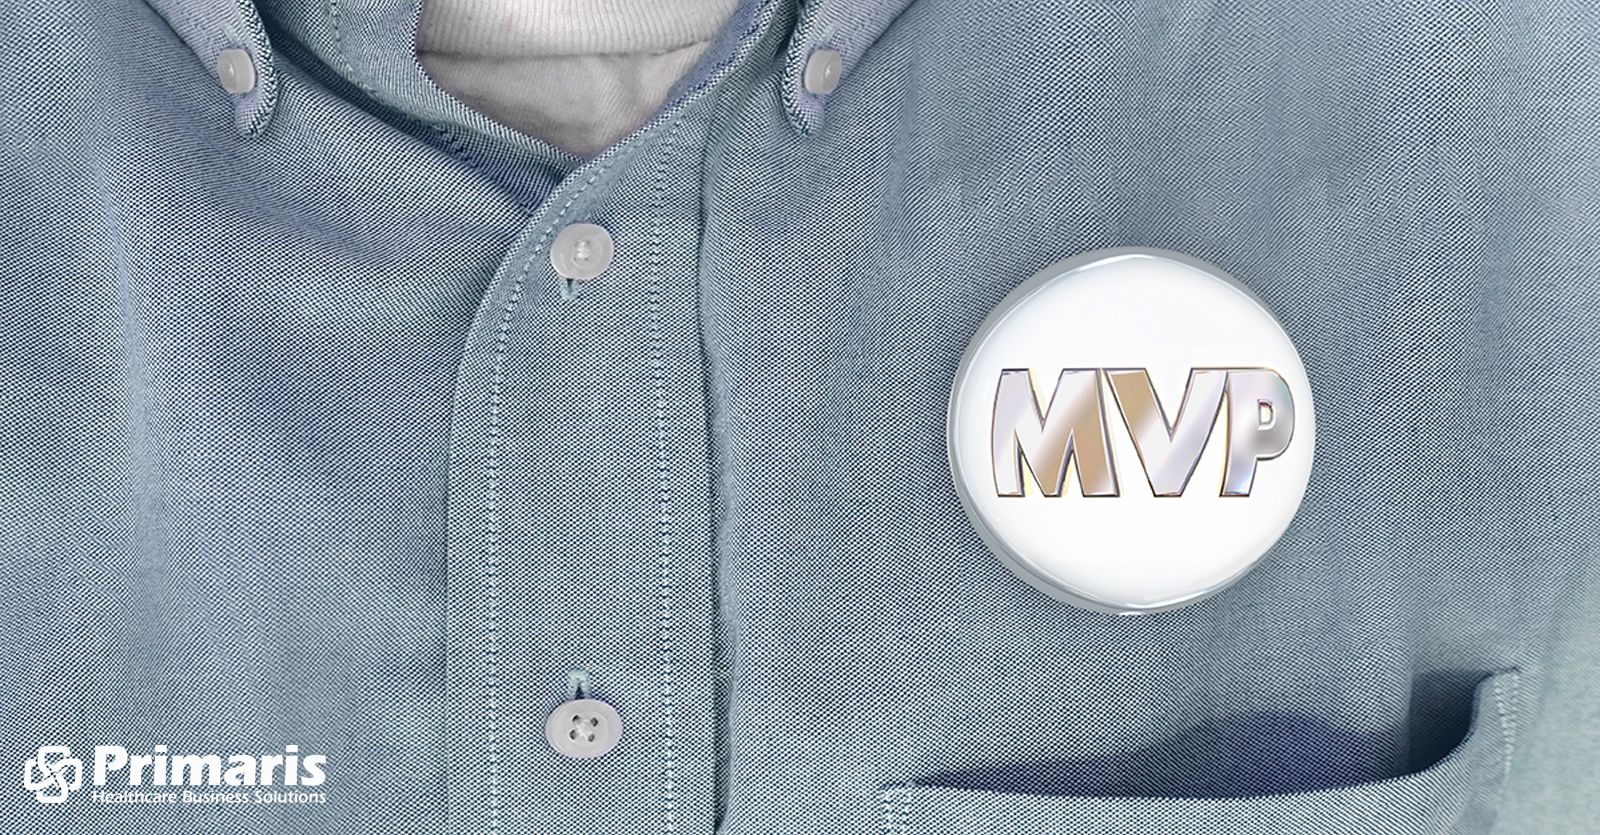 MVP button on a man's shirt, indicating that the patient if the MVP: Most Valuable Patient.